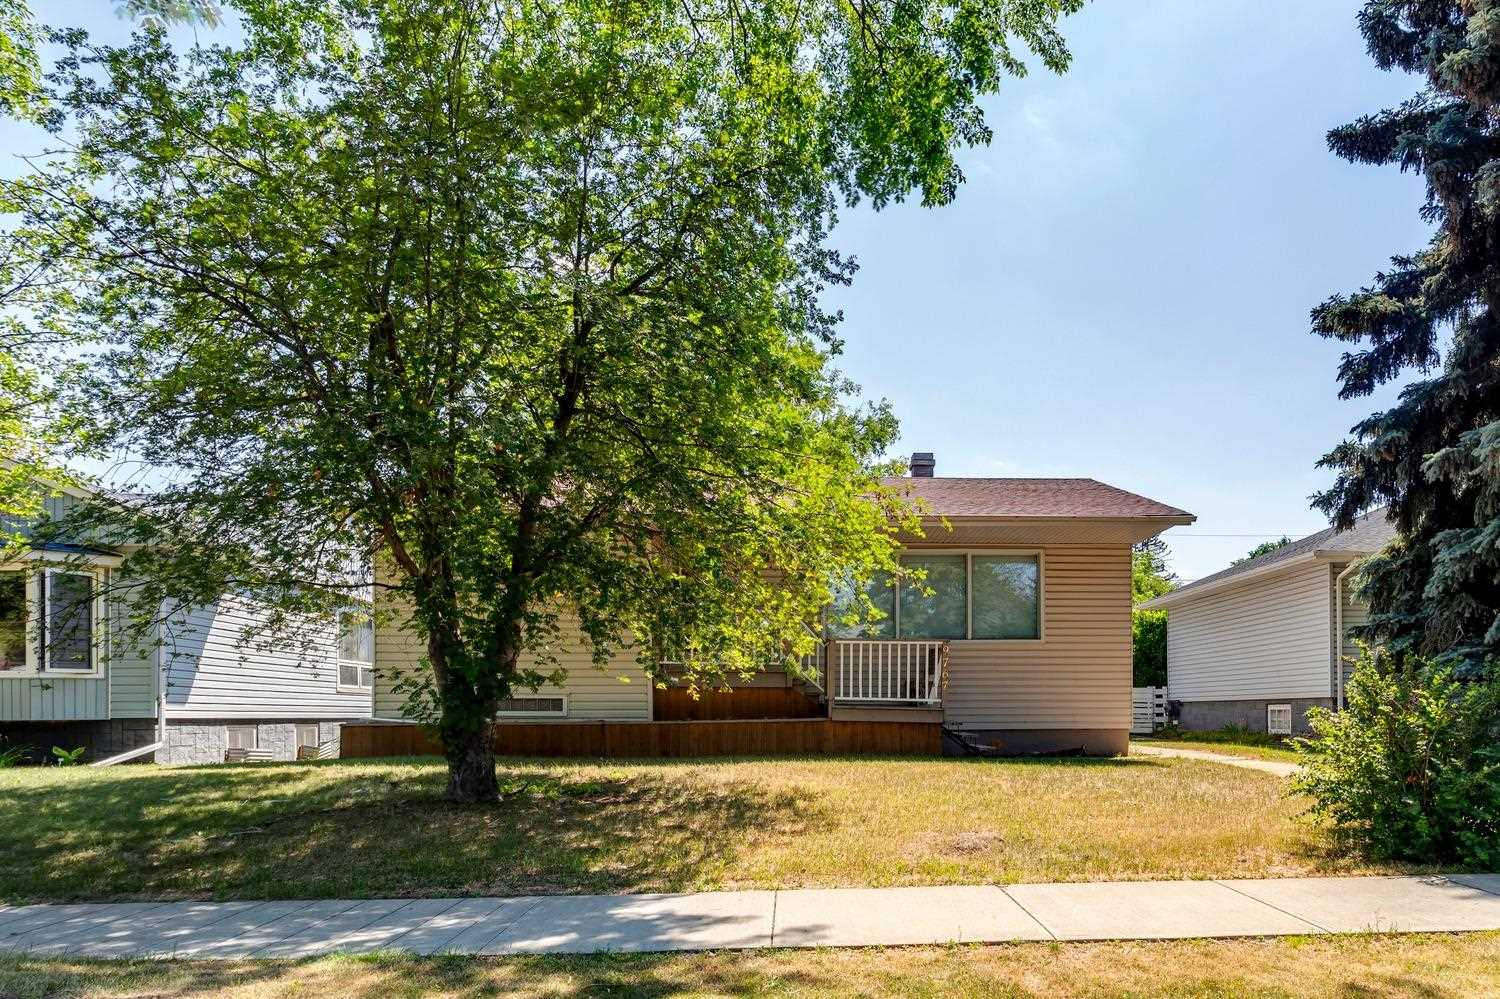 Welcome to Crestwood!  Are you looking for a building lot or renovation project?  This home is located on one of the best streets in Crestwood!  Just steps to the river valley ? this 1105sqft bungalow has 2 bedrooms & 1 bathroom & is located on a 6751sqft Lot - 52ft x 130ft ? the perfect size for building!  Crestwood is bordered on the east by the river valley, on the north by the MacKinnon Ravine & on the south by the MacKenzie Ravine! Top Rated school, shopping, cafes, restaurants ? everything you are looking for in a mature community.